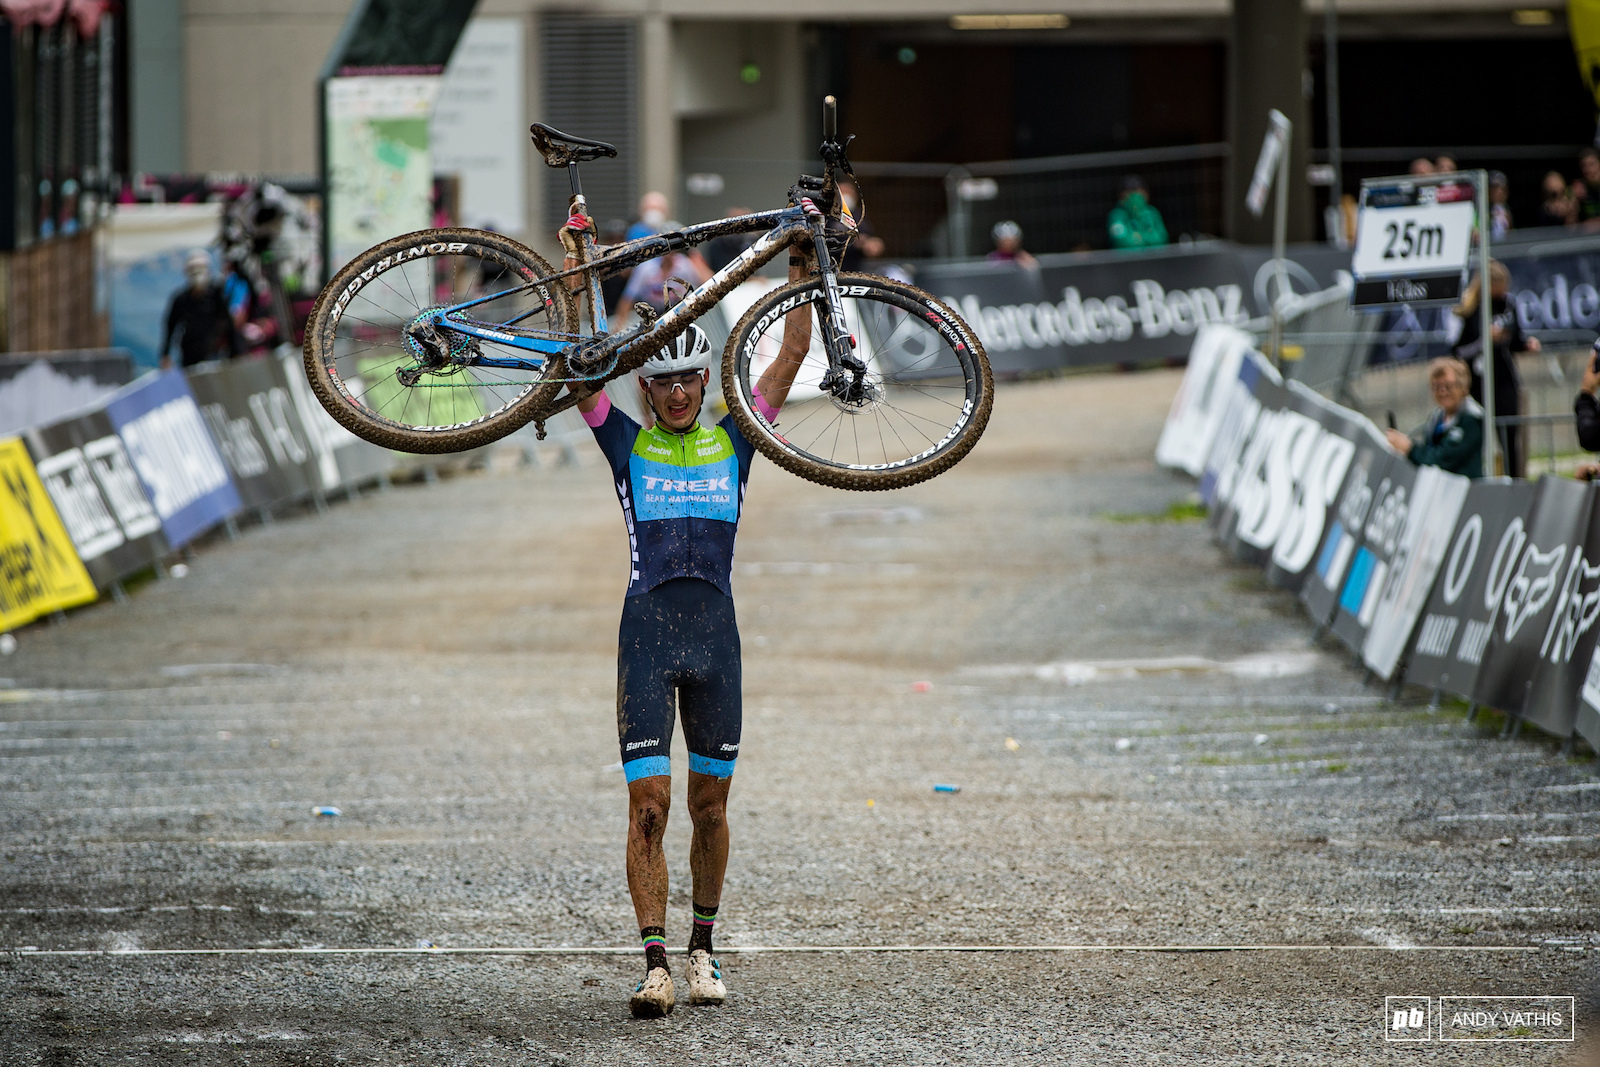 First World Cup win for Riley Amos and he chose one of the hardest tracks to do it on. Well done.